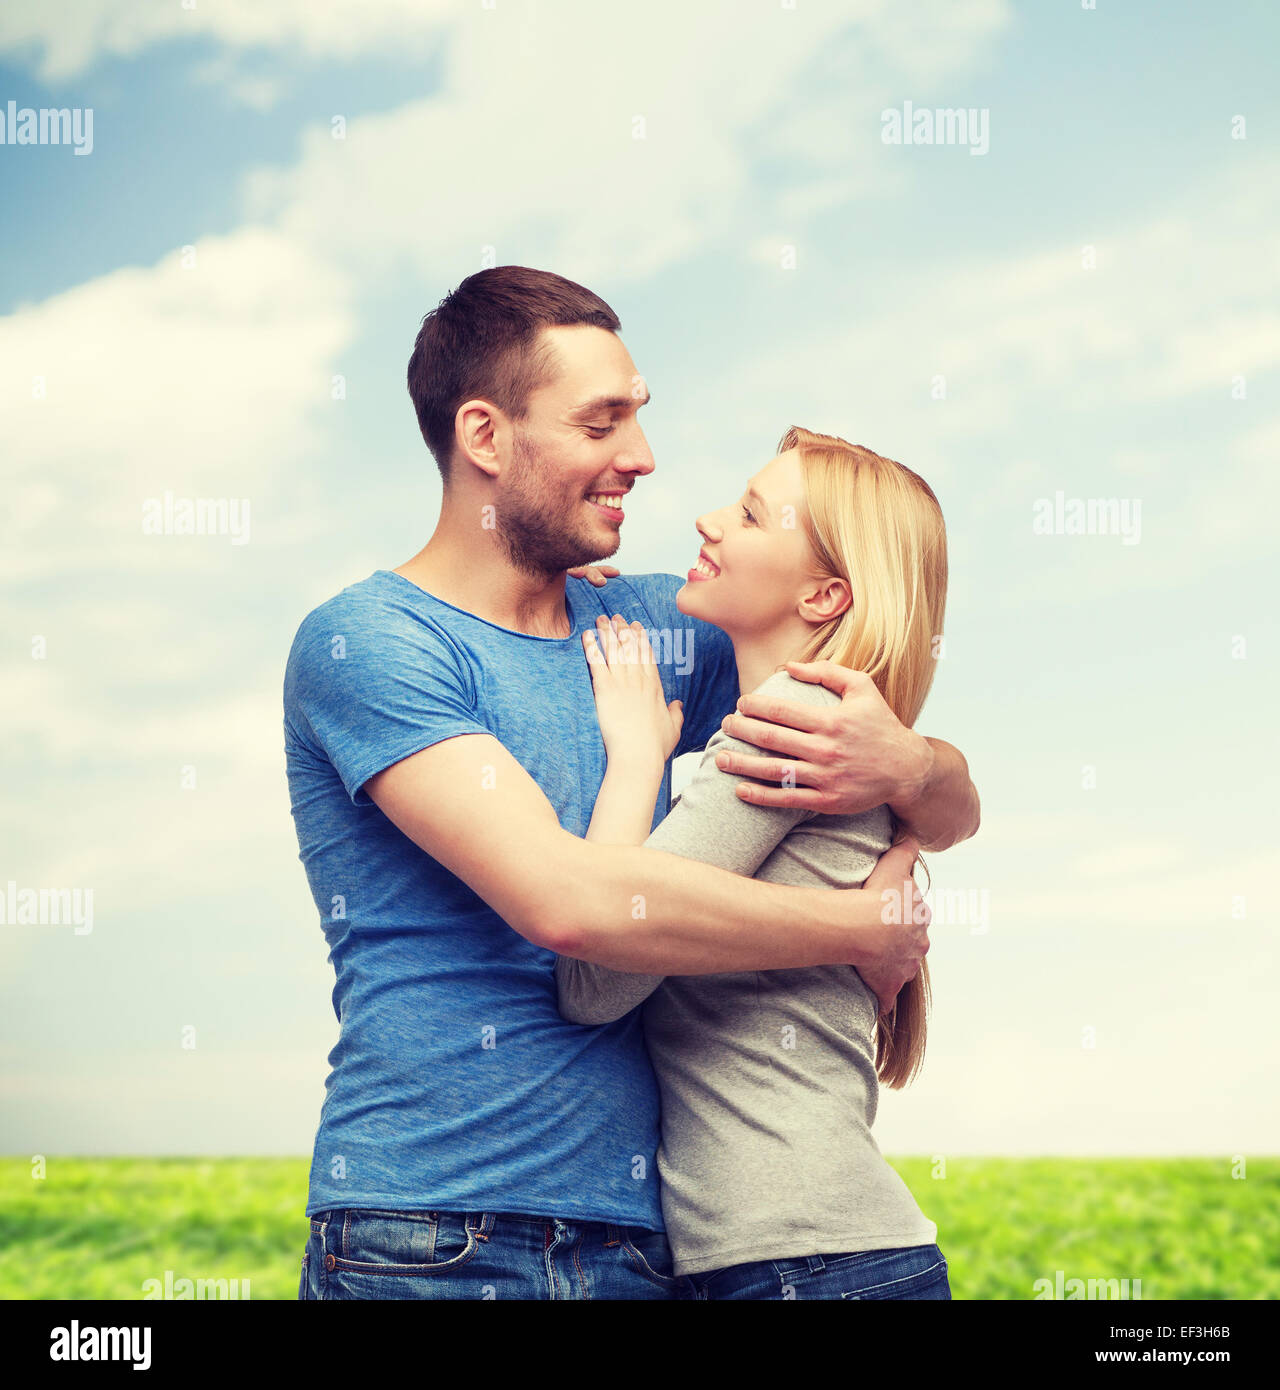 smiling couple hugging and looking at each other - Stock Image